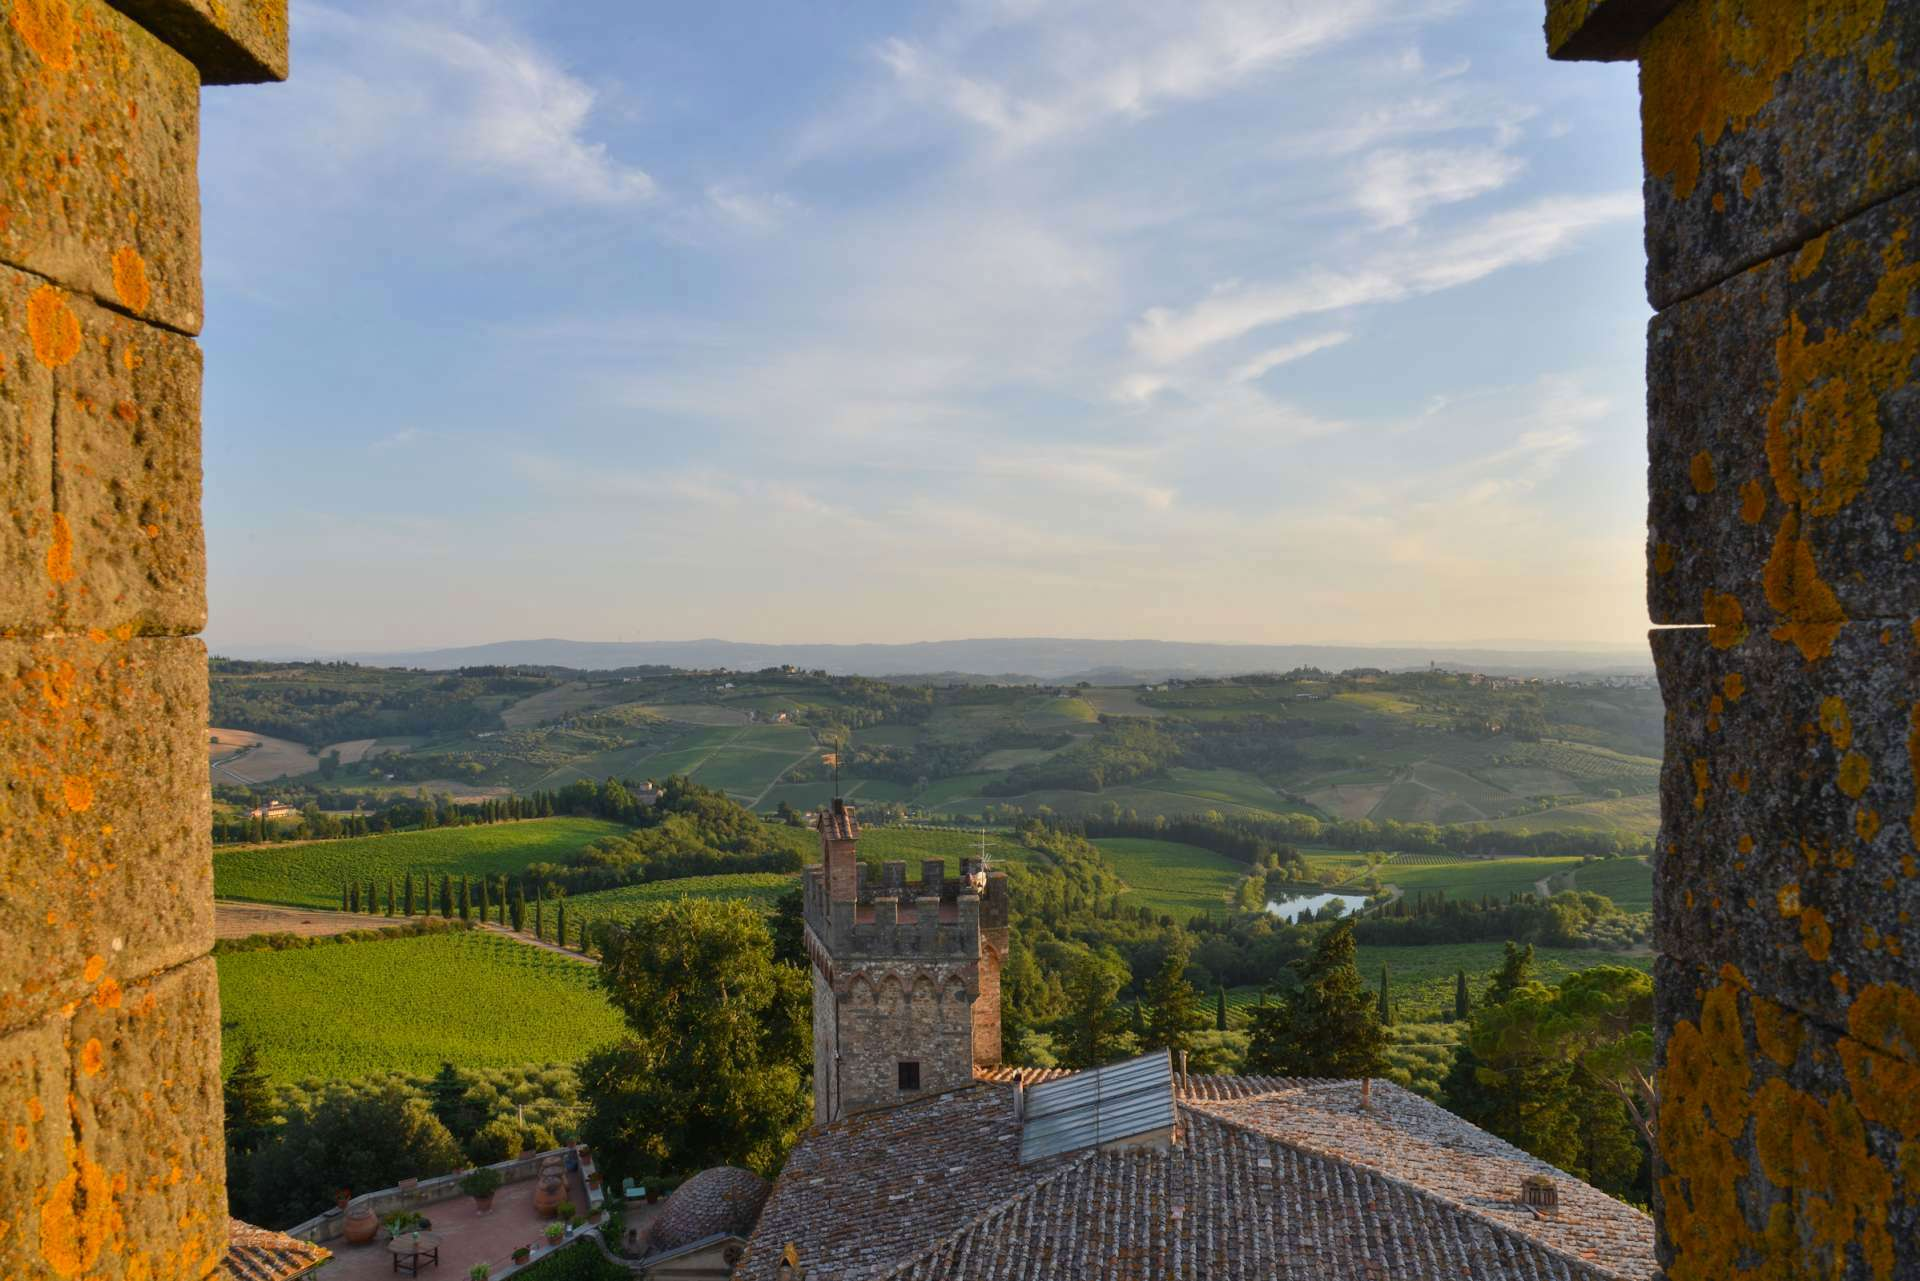 5 Reasons Why Tuscany Should Be Your Next Destination